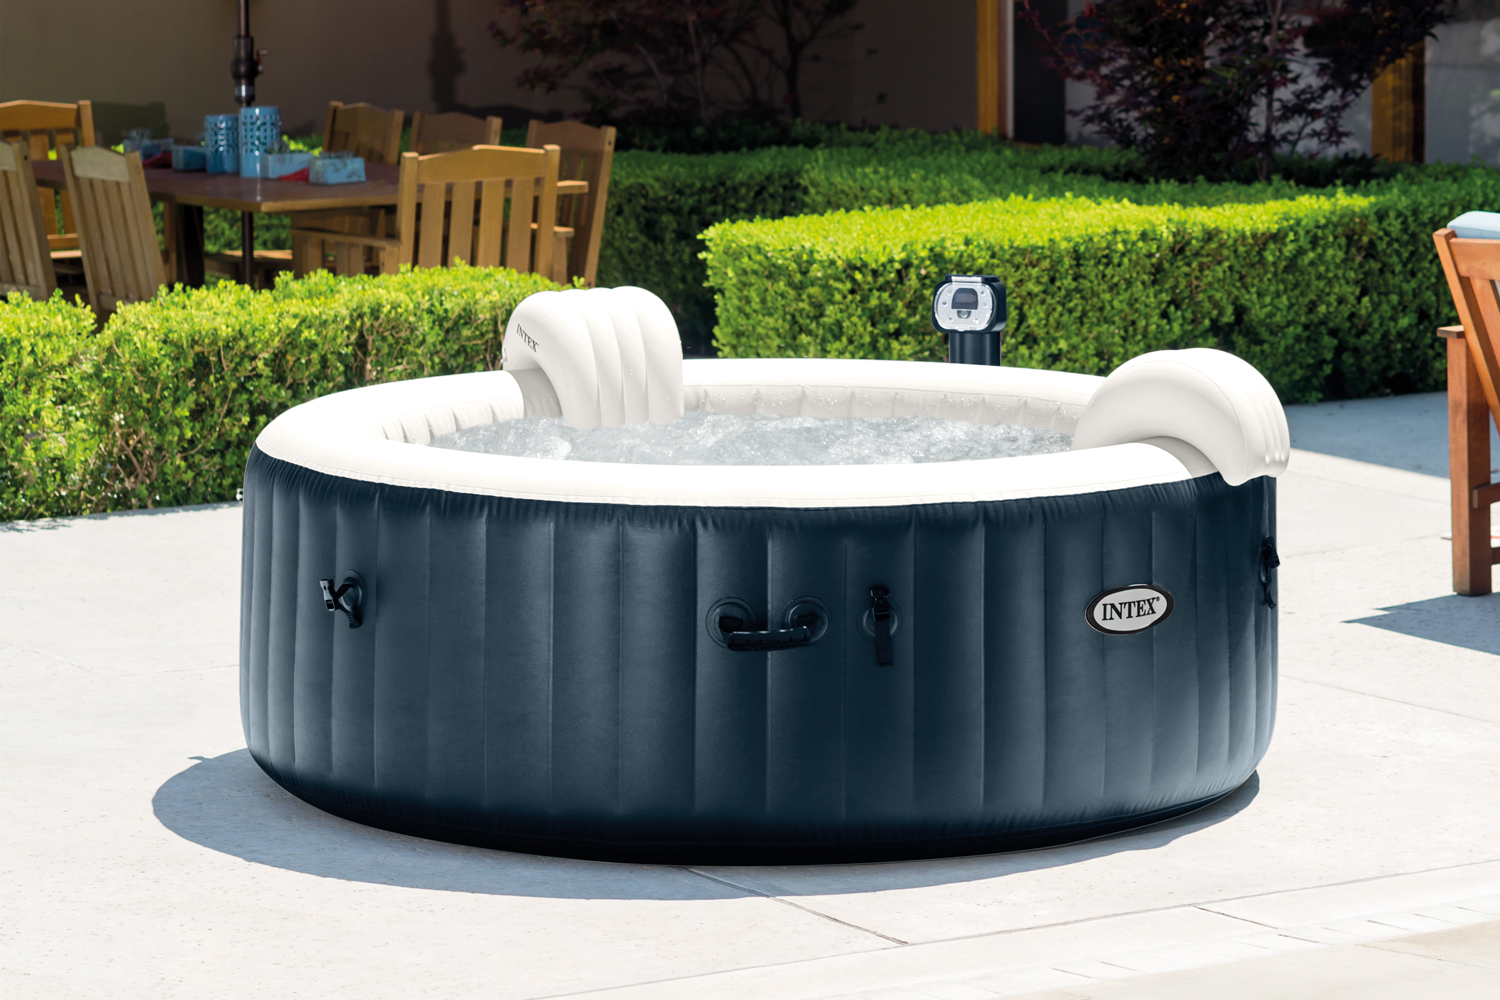 tubs en outdoors saunas p recreation spas categories pools tub acrylic grey playsets providence hot person home and jet